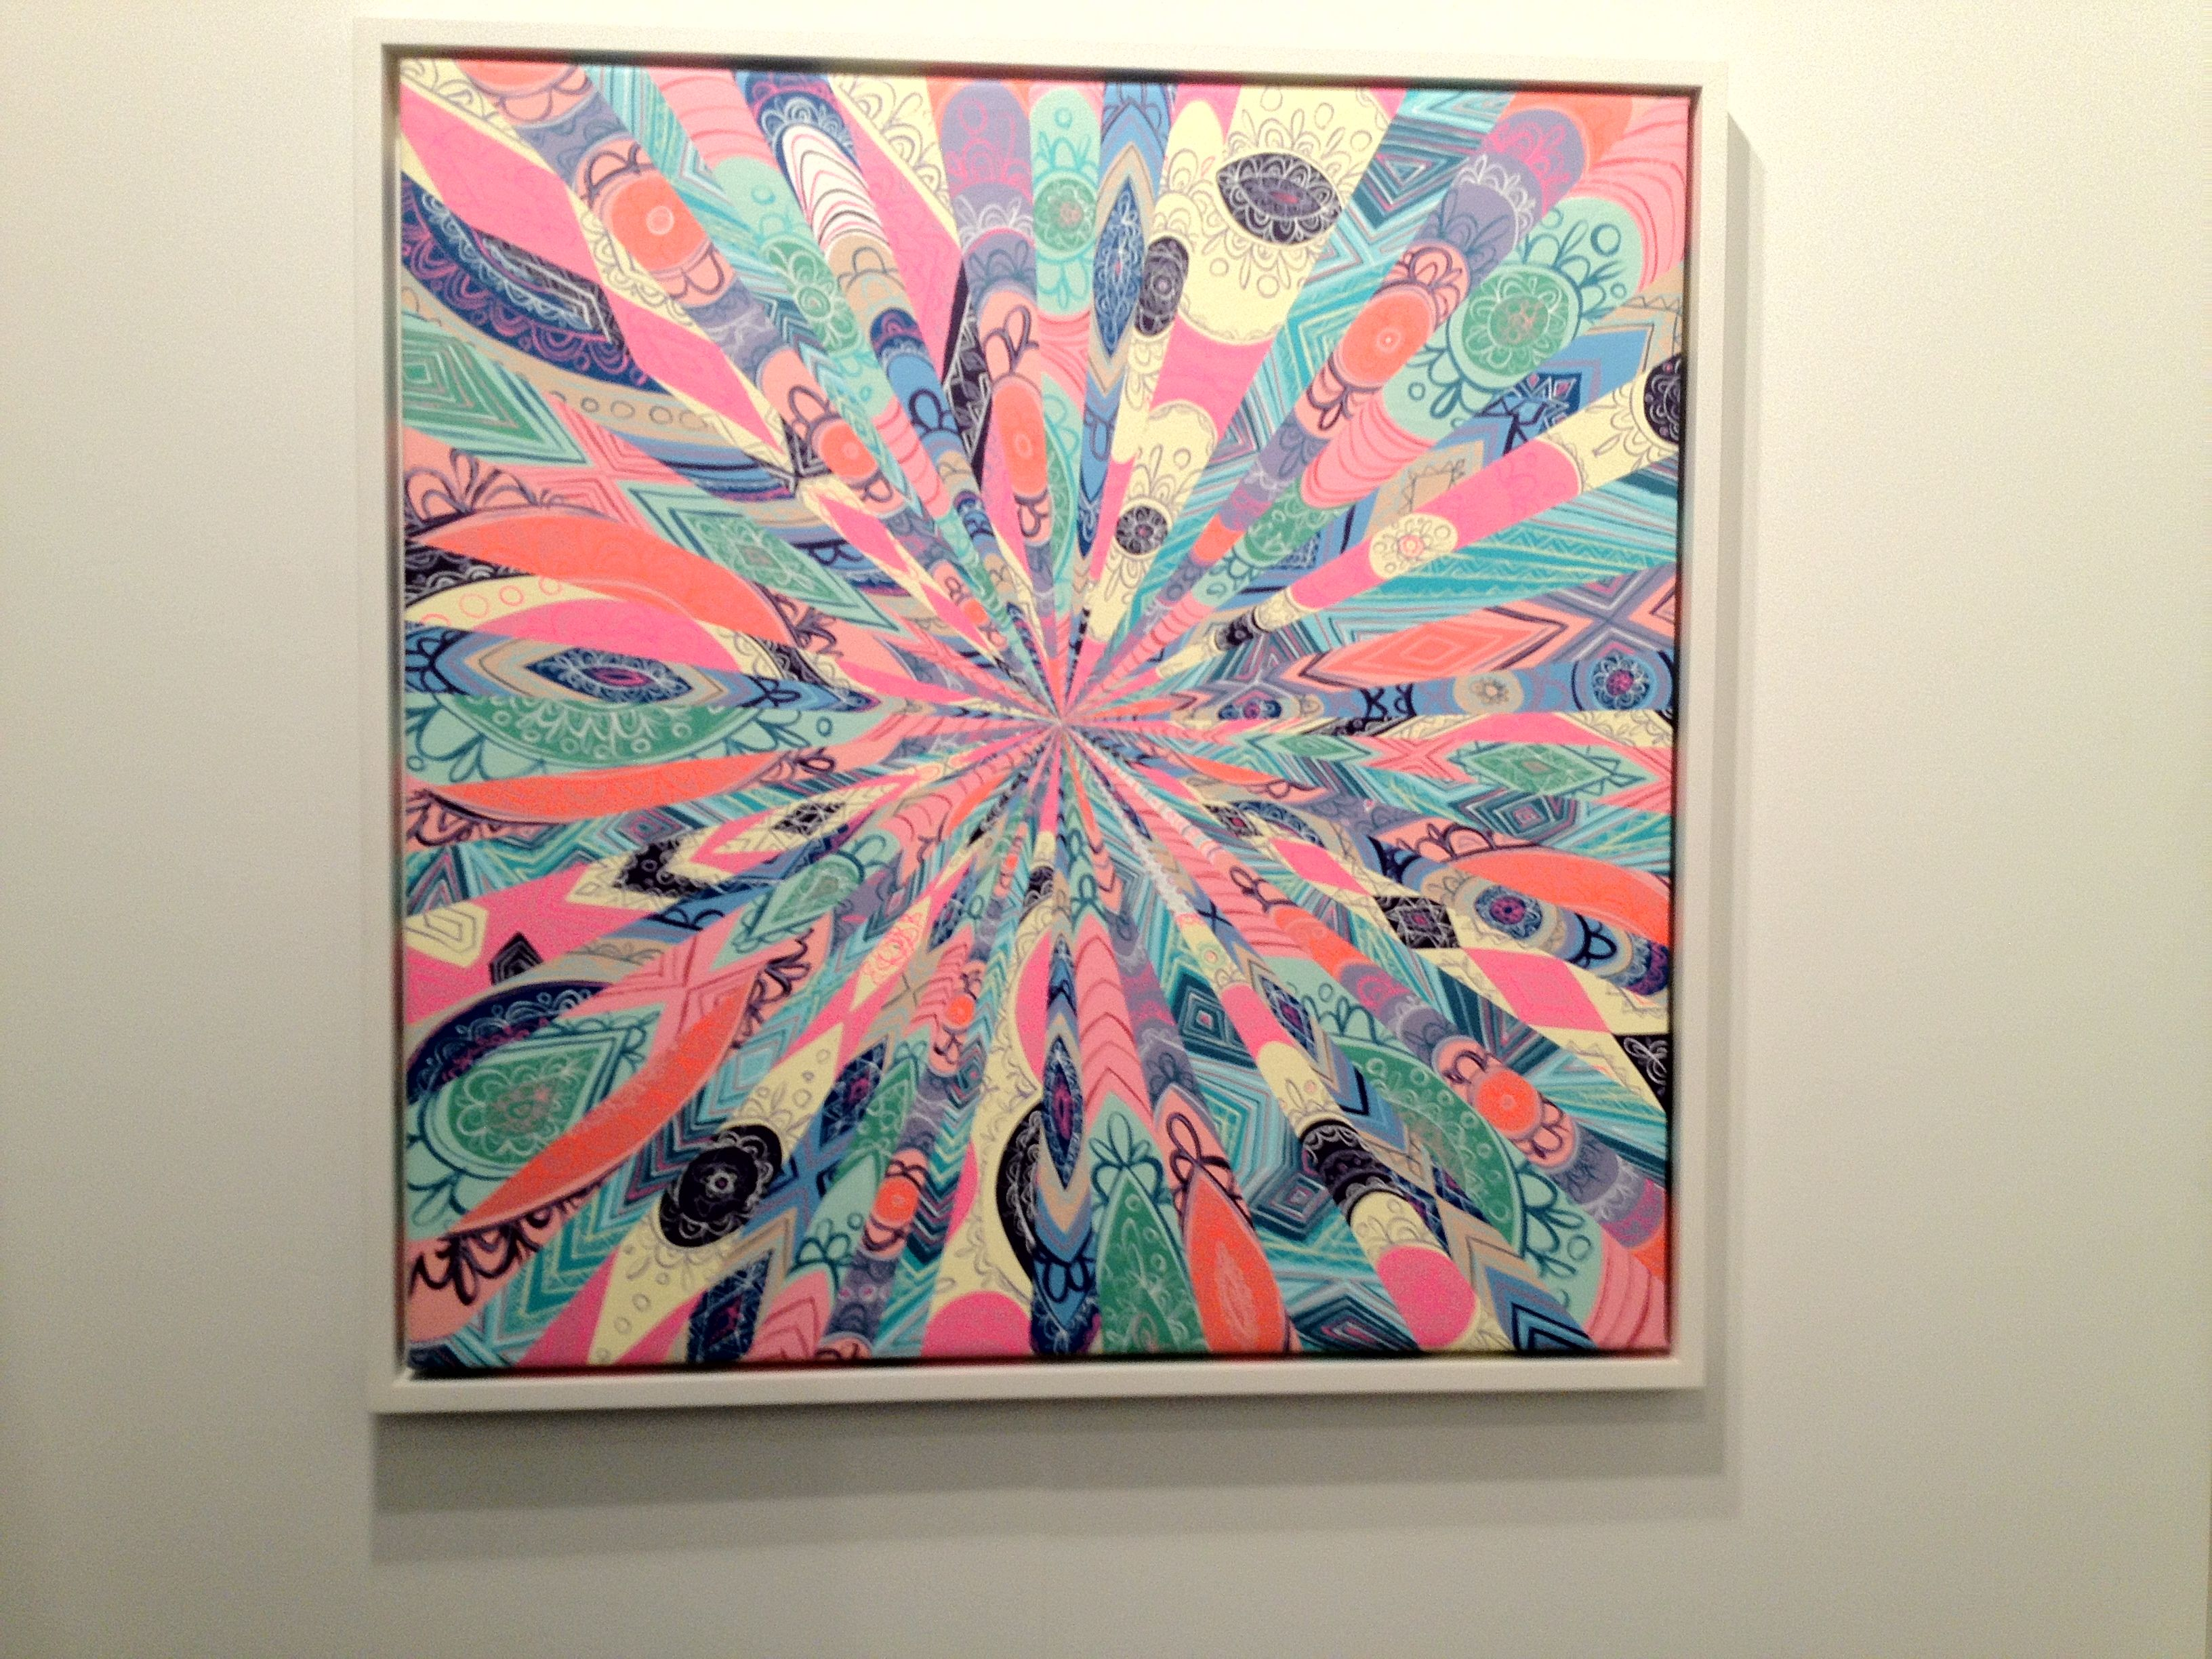 Art Los Angeles Contemporary. Kelsey Brookes, Quint Contamporary Art Gallery